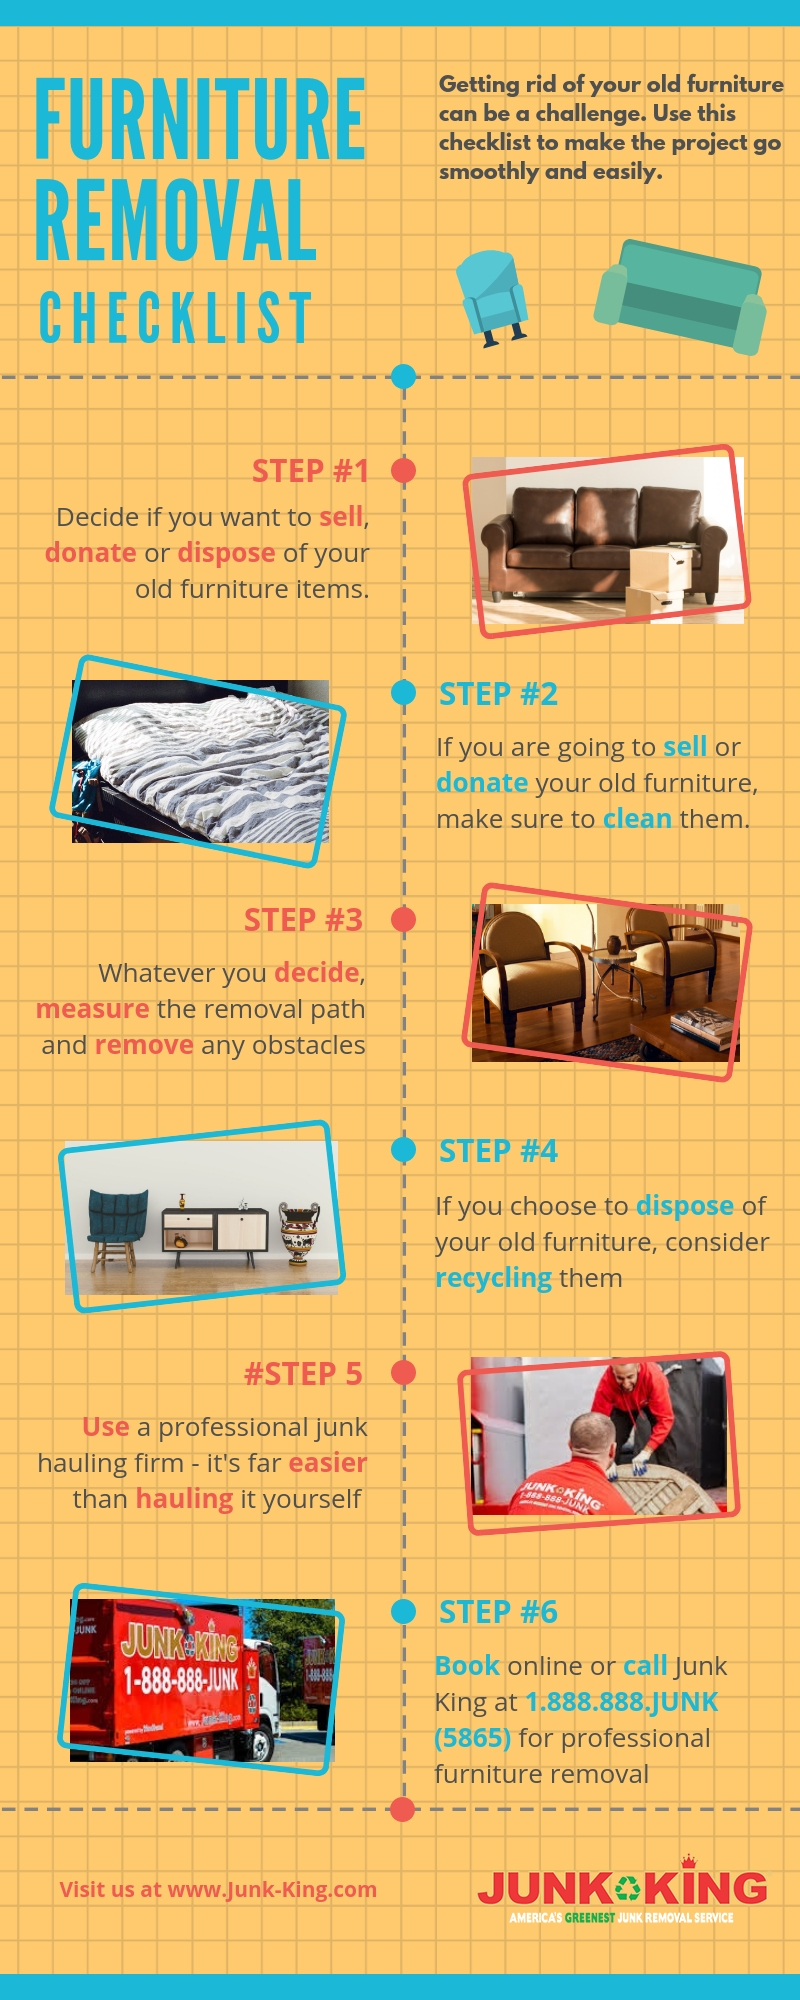 Furniture Removal Checklist